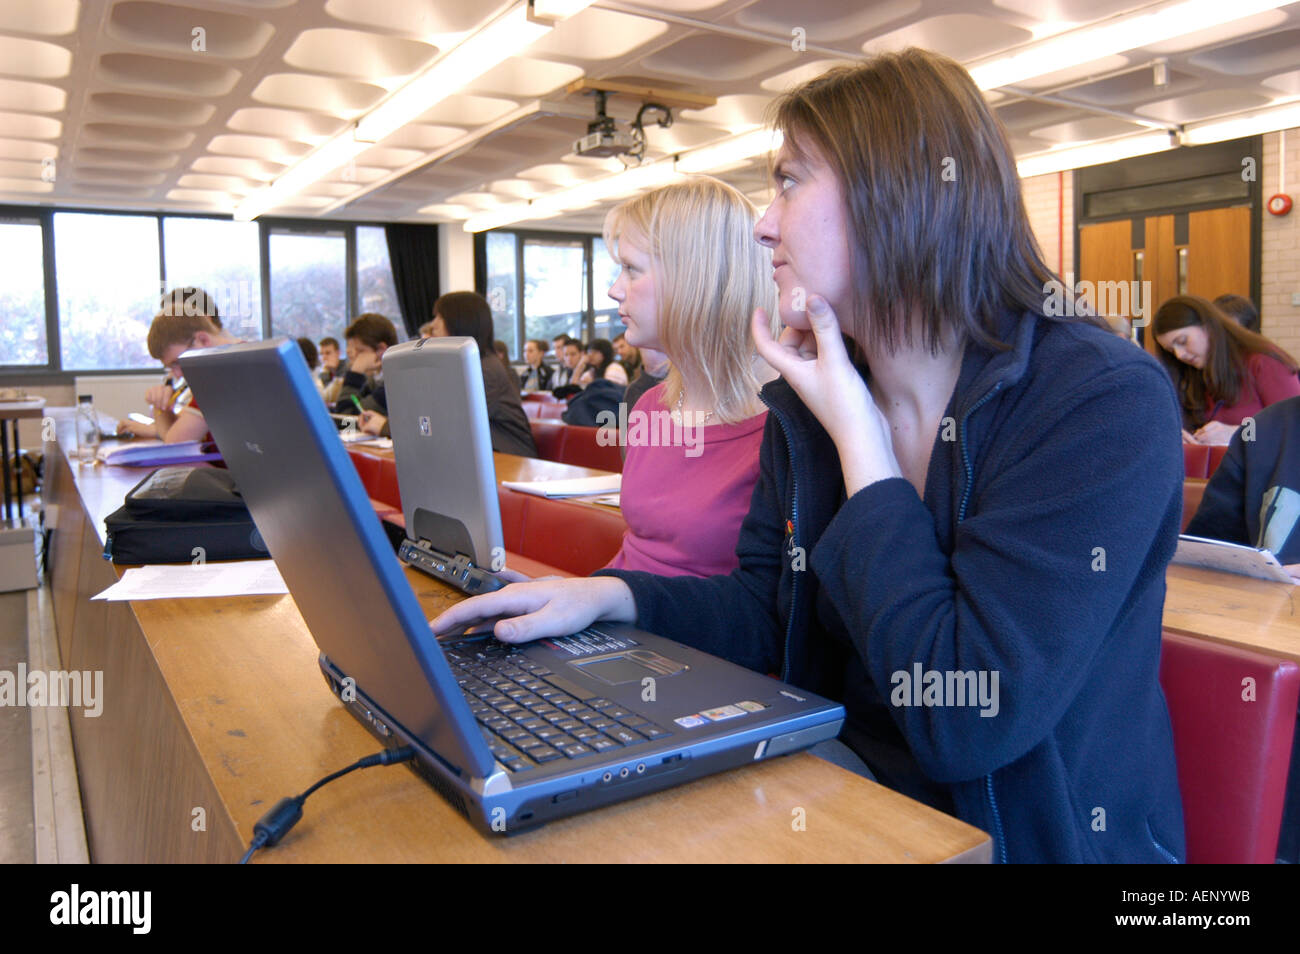 Students using laptop computers Law lecture Aberystwyth University Ceredigion west wales UK - Stock Image